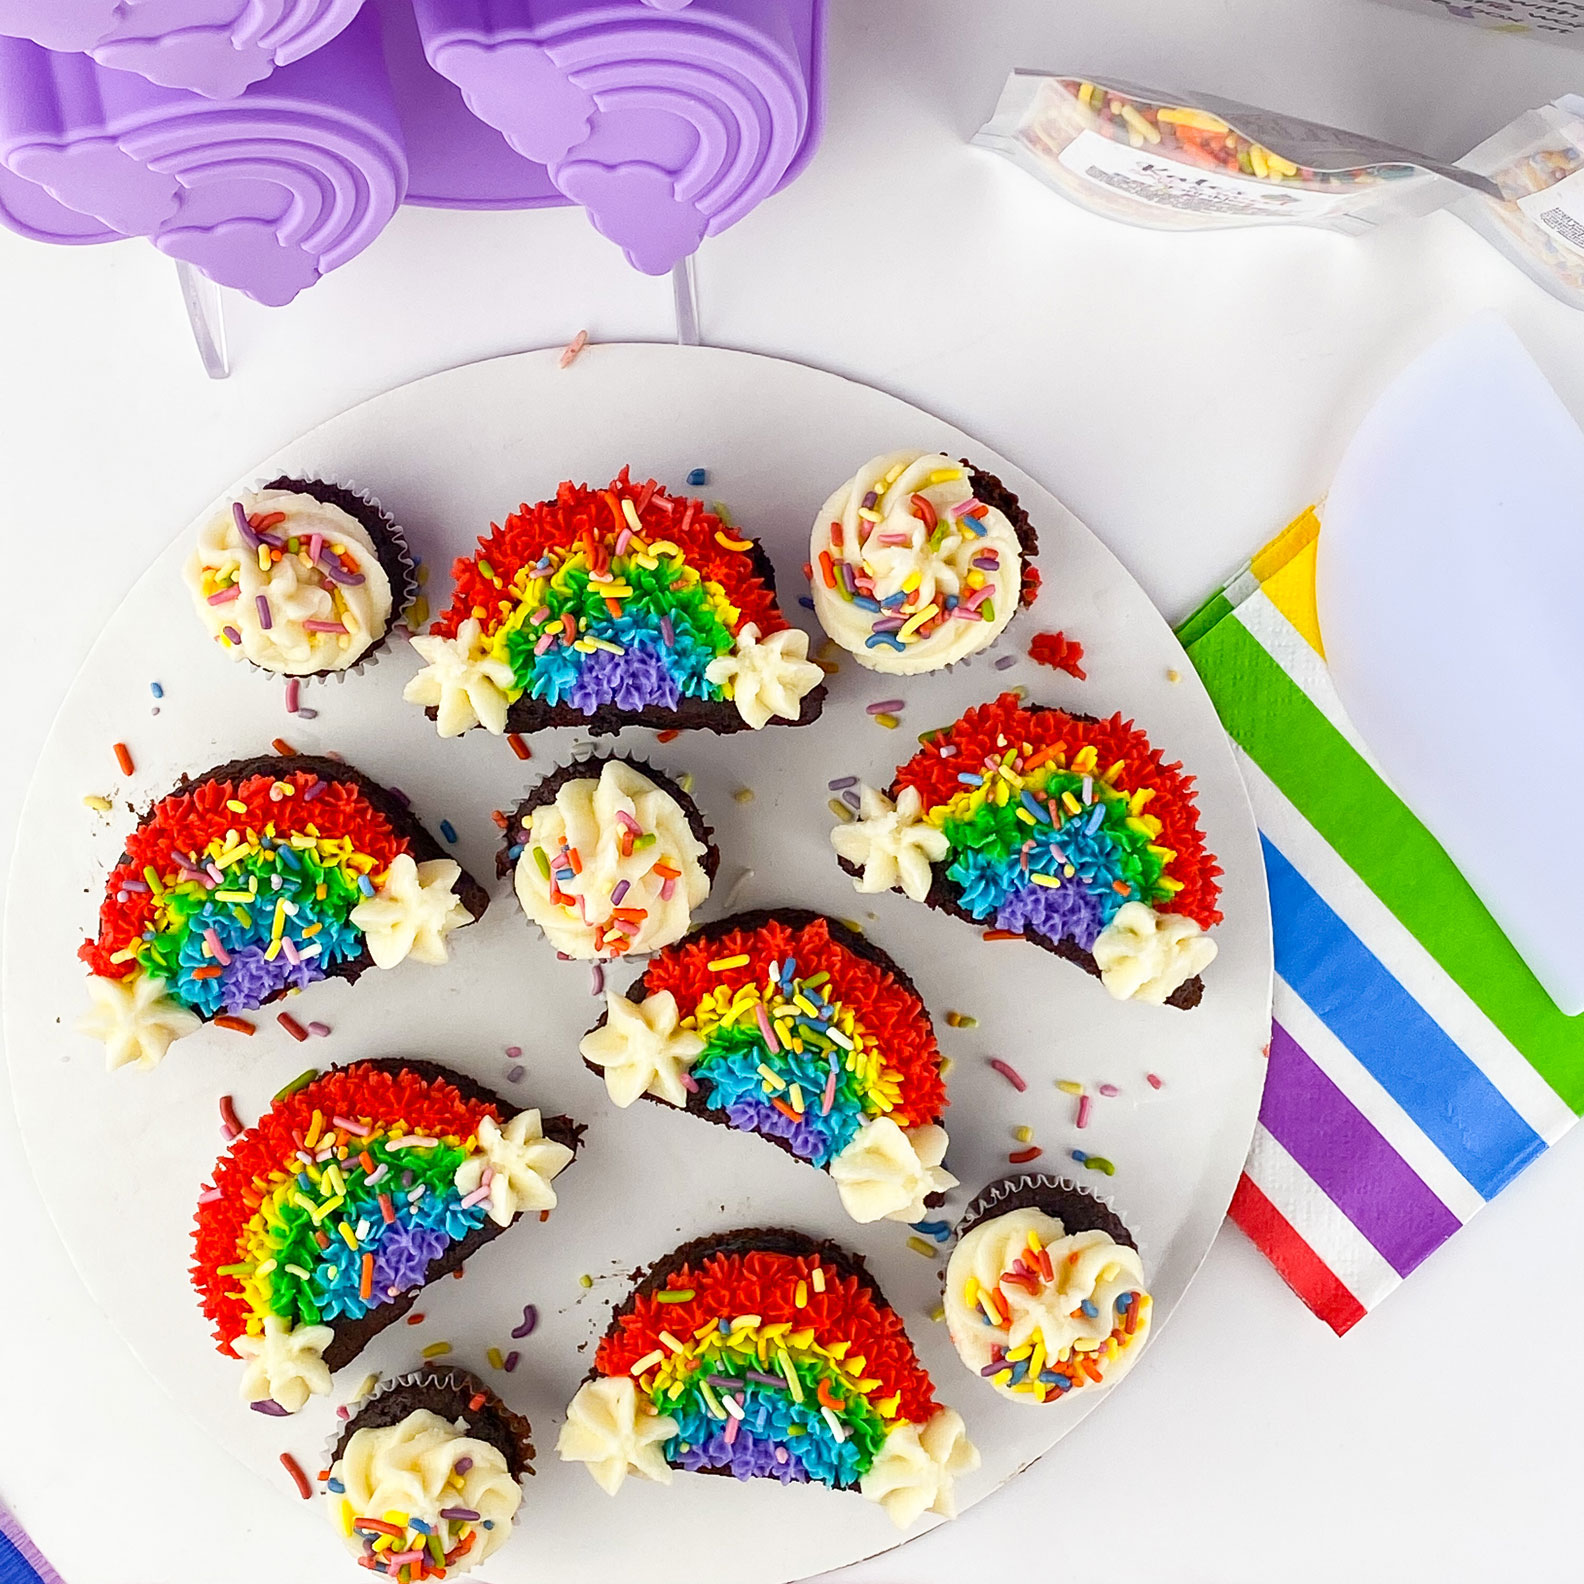 Kate's-Safe-&-Sweet---Rainbow-Cakes-with-Pan-and-Napkins